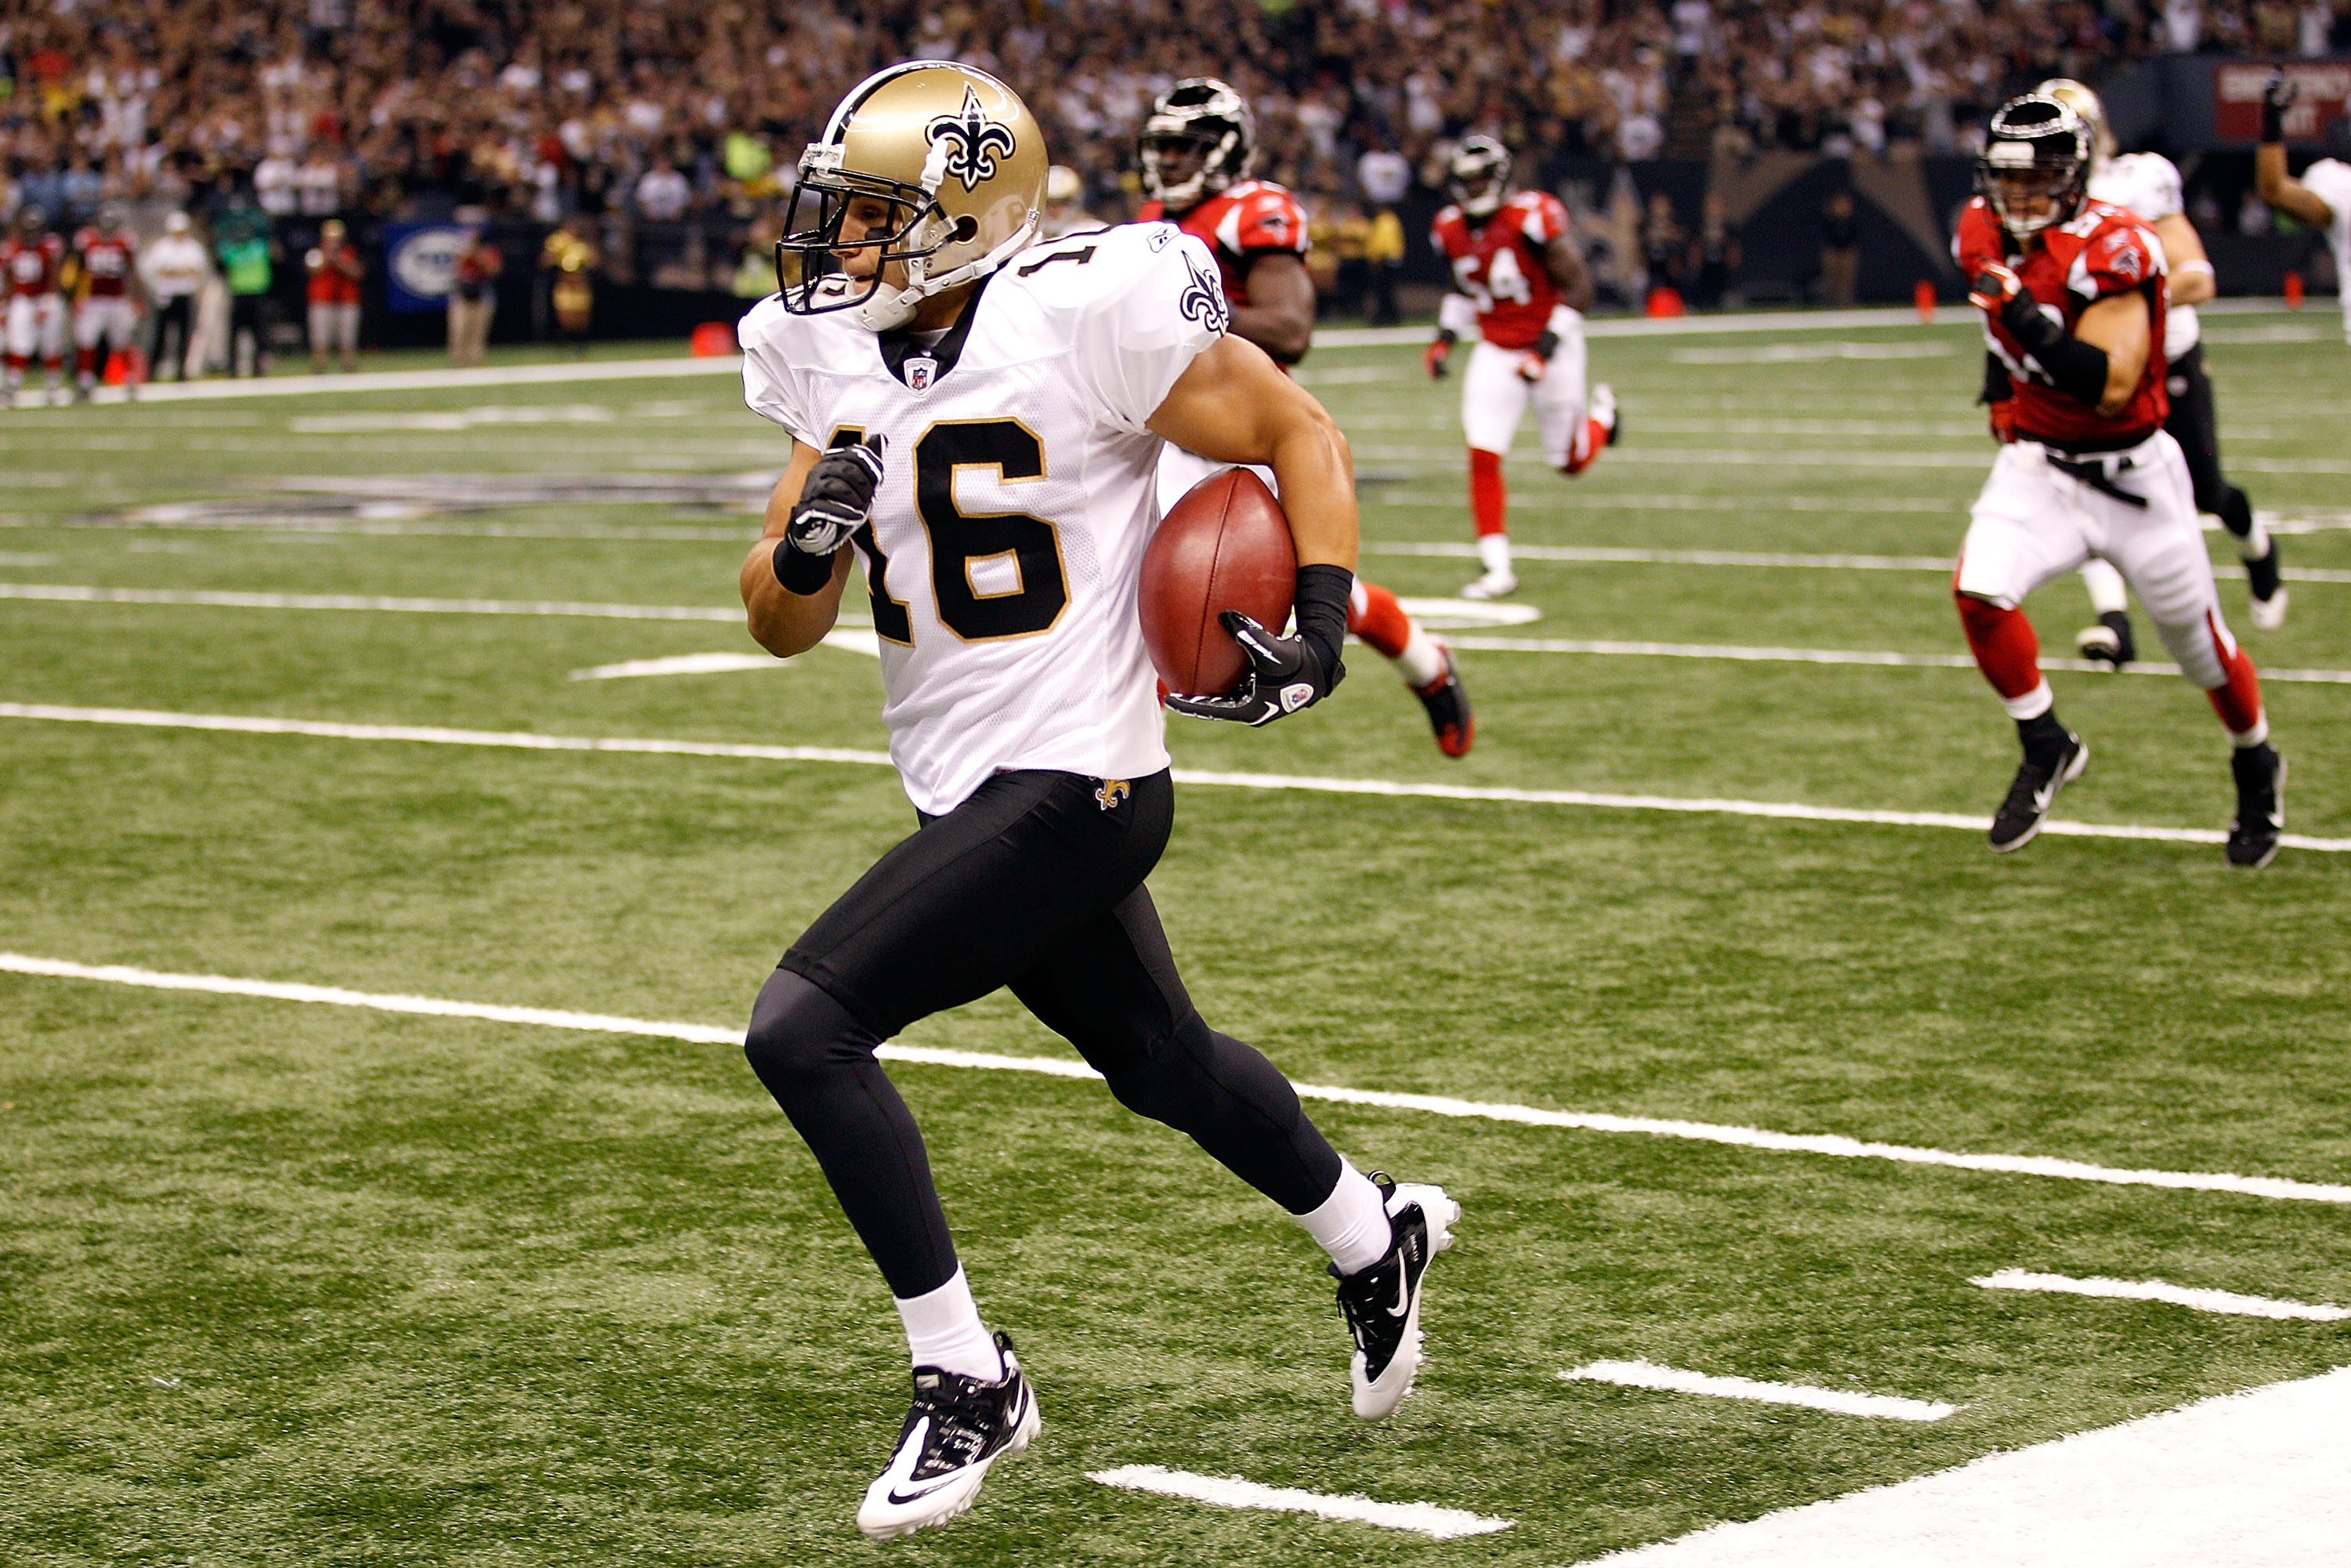 NEW ORLEANS - SEPTEMBER 26:  Lance Moore #16 of the New Orleans Saints returns a punt against the Atlanta Falcons at the Louisiana Superdome on September 26, 2010 in New Orleans, Louisiana.  (Photo by Chris Graythen/Getty Images)